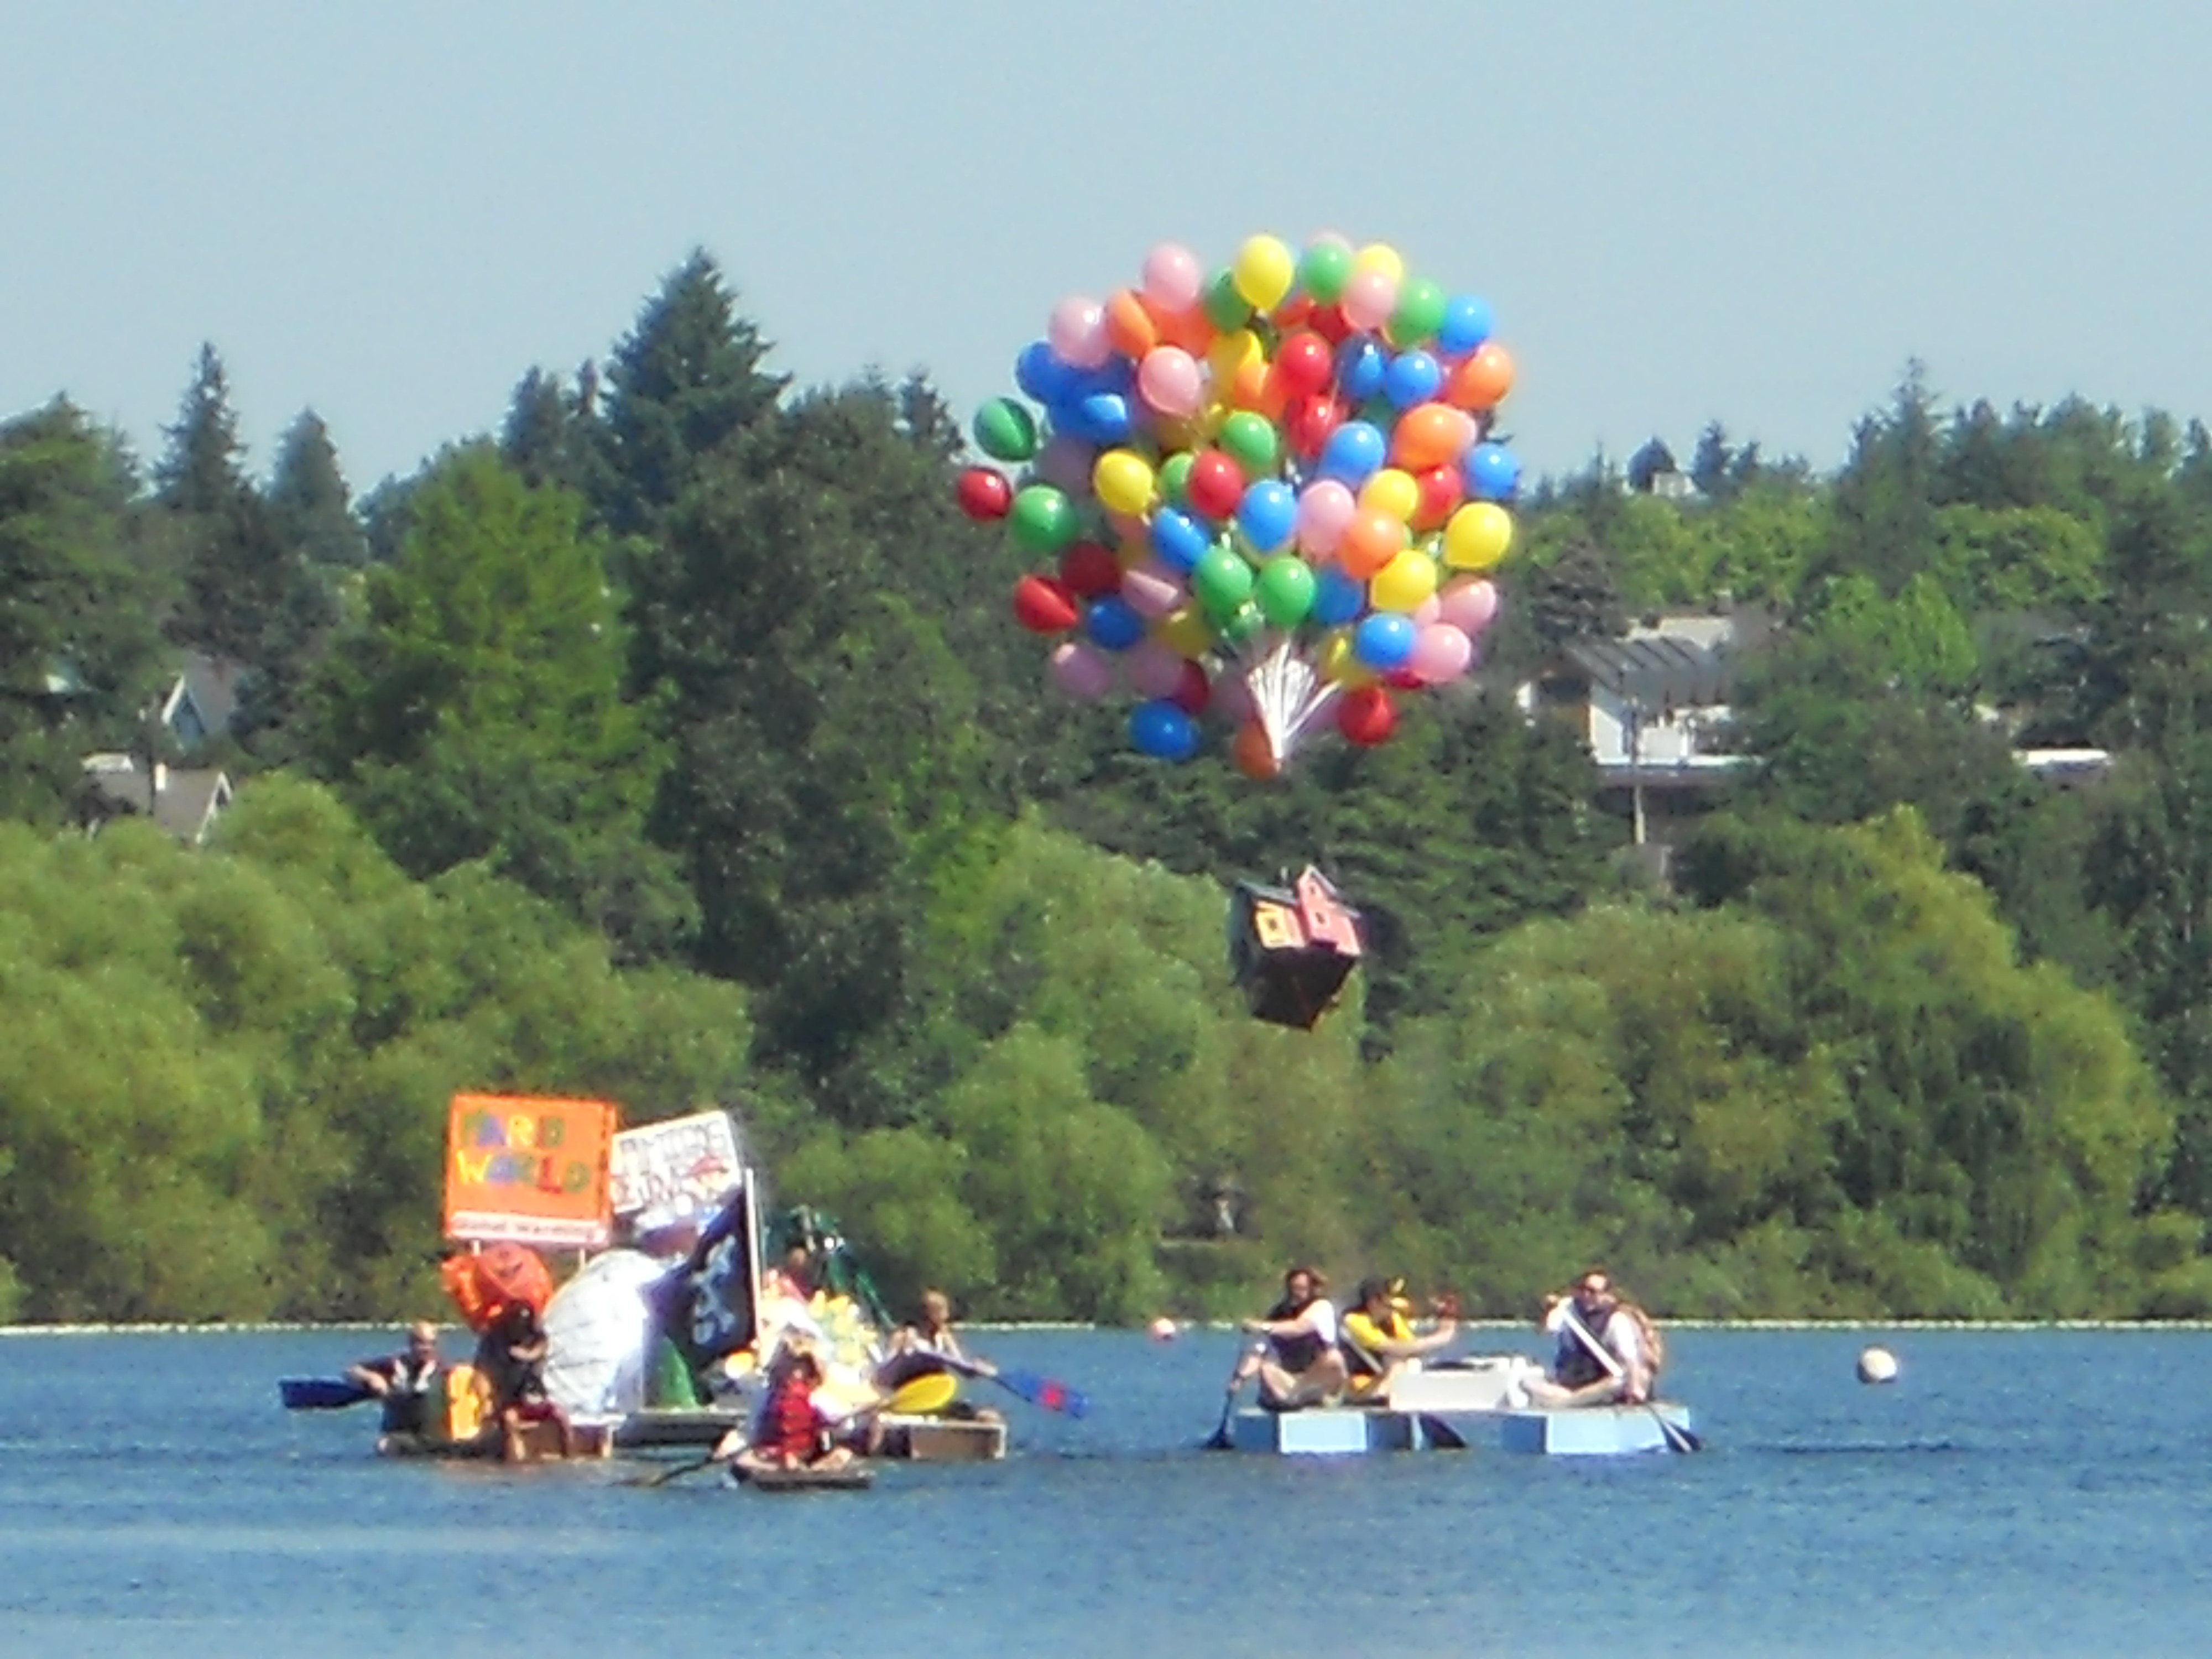 Self-Org Groups in the Seattle Seafair Milk Carton Derby